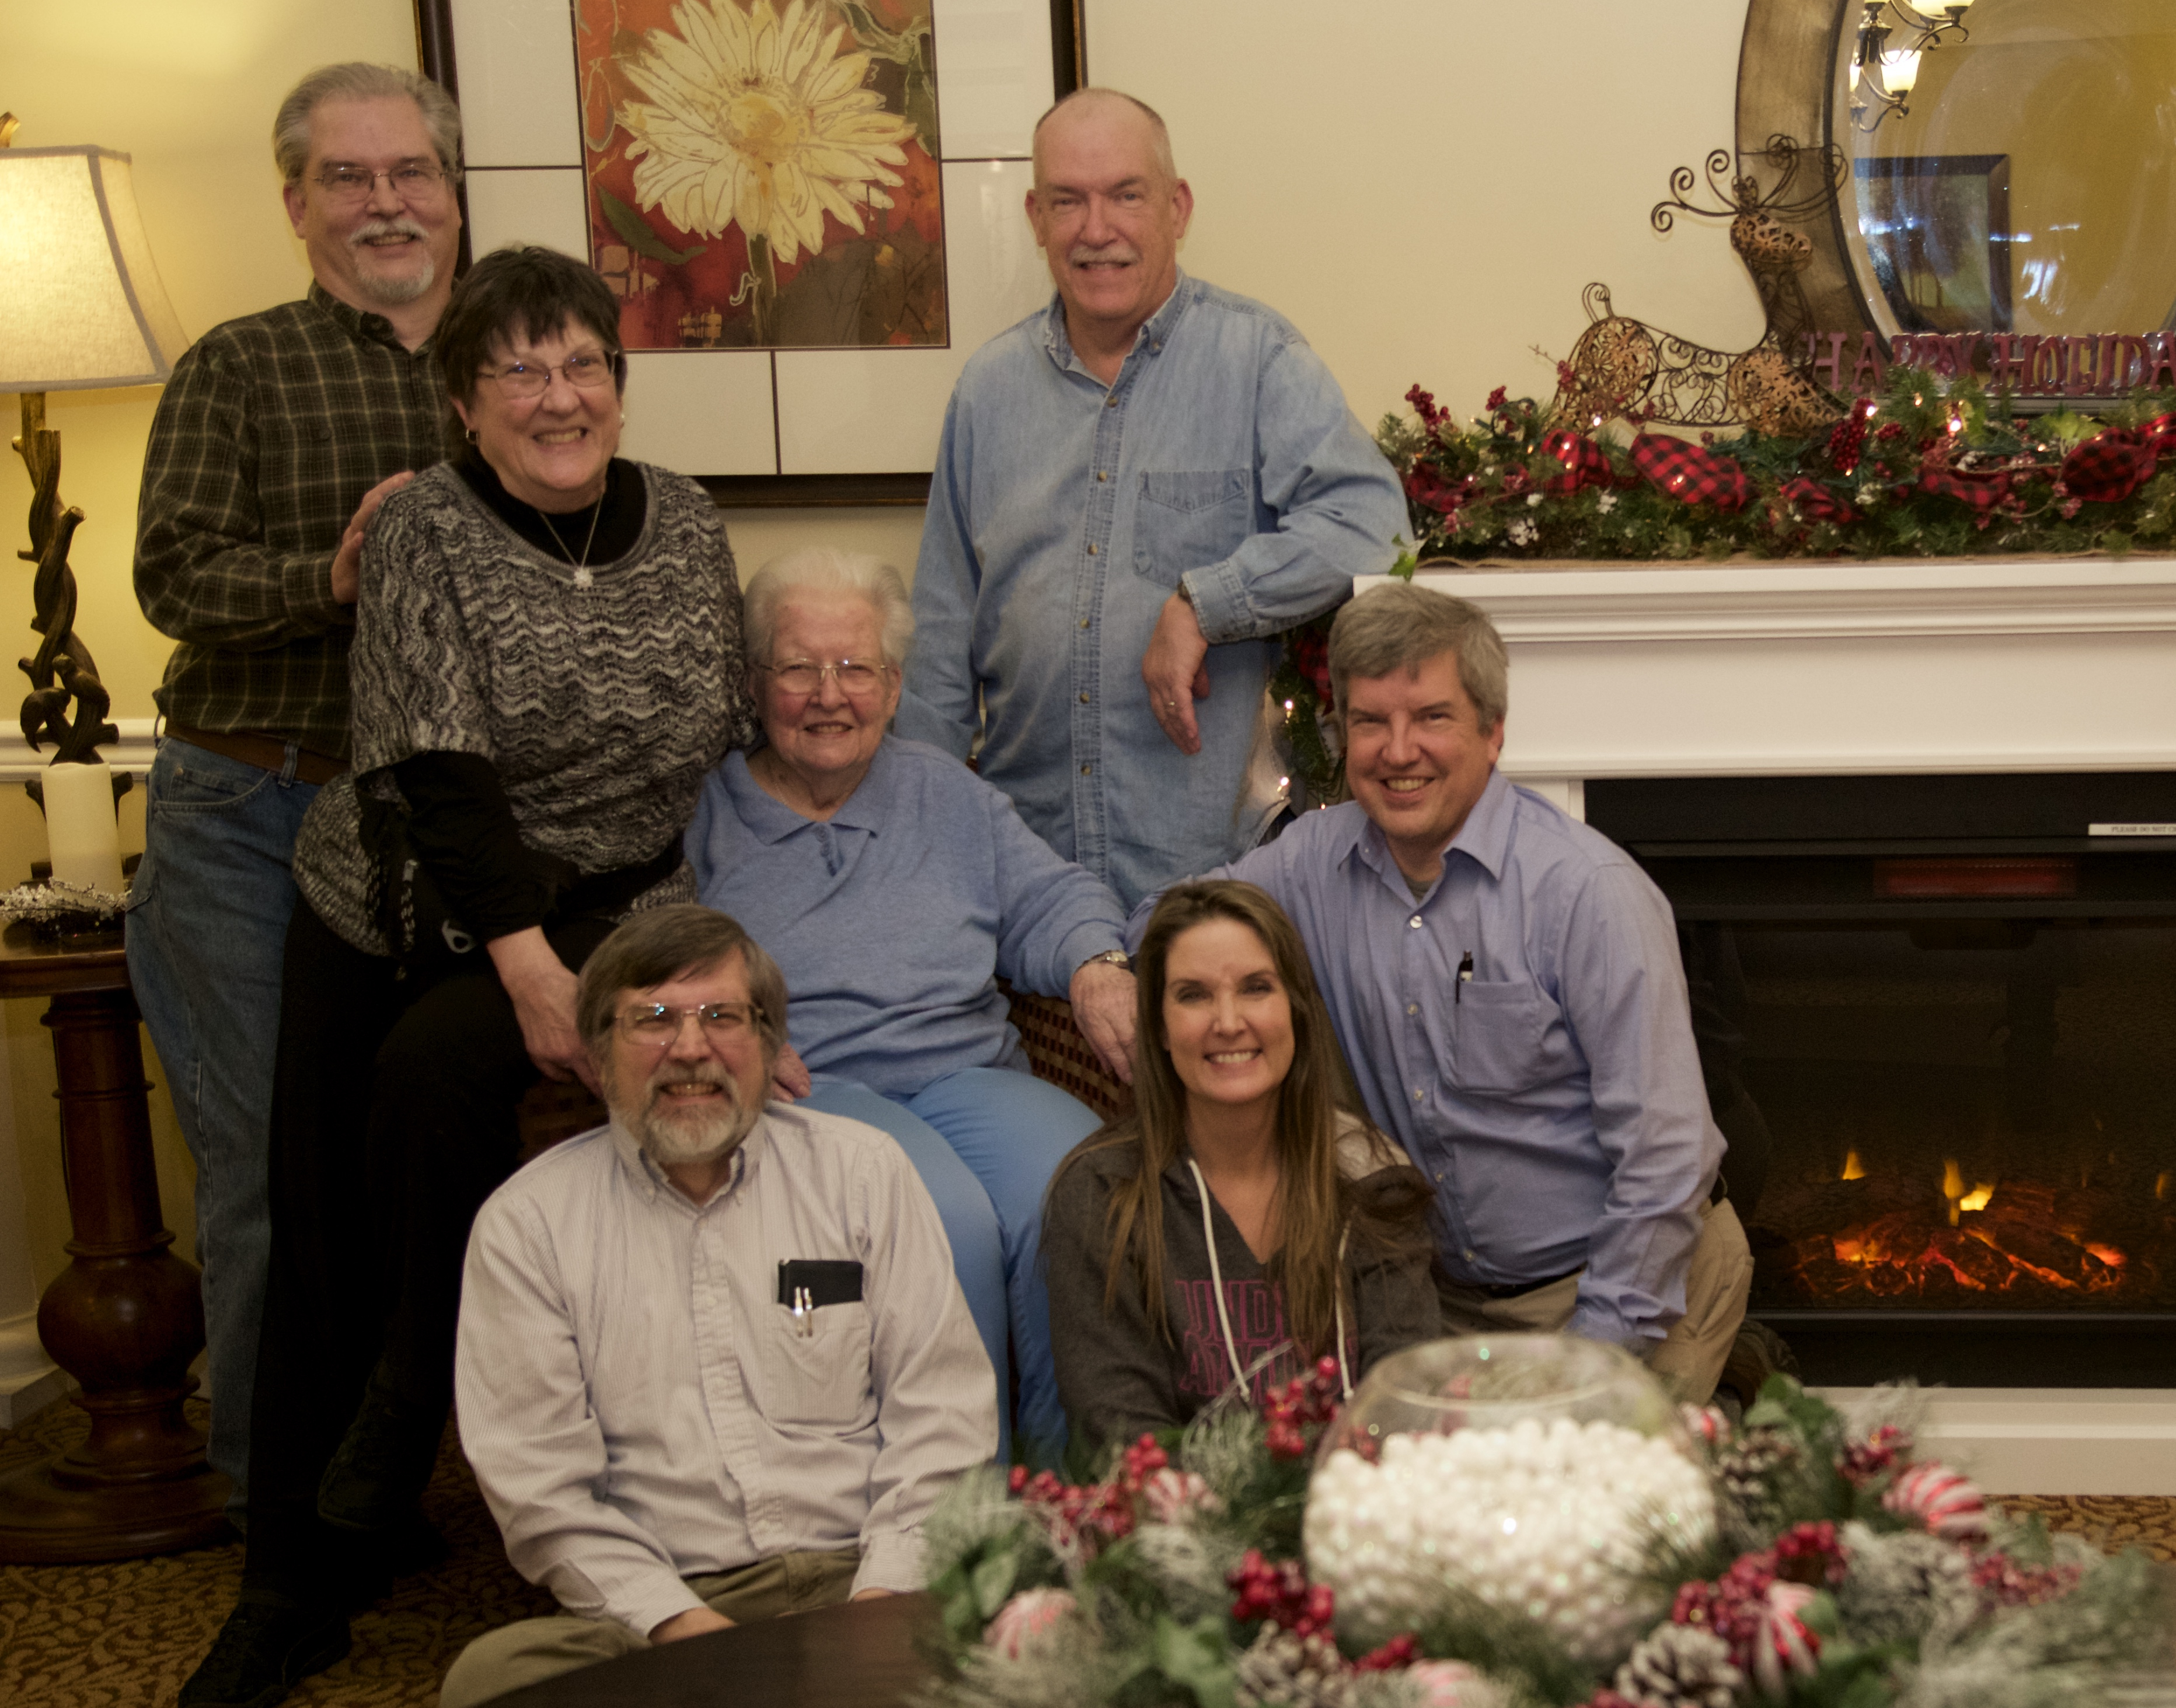 Complete Rodgers Clan, Dec. 2018